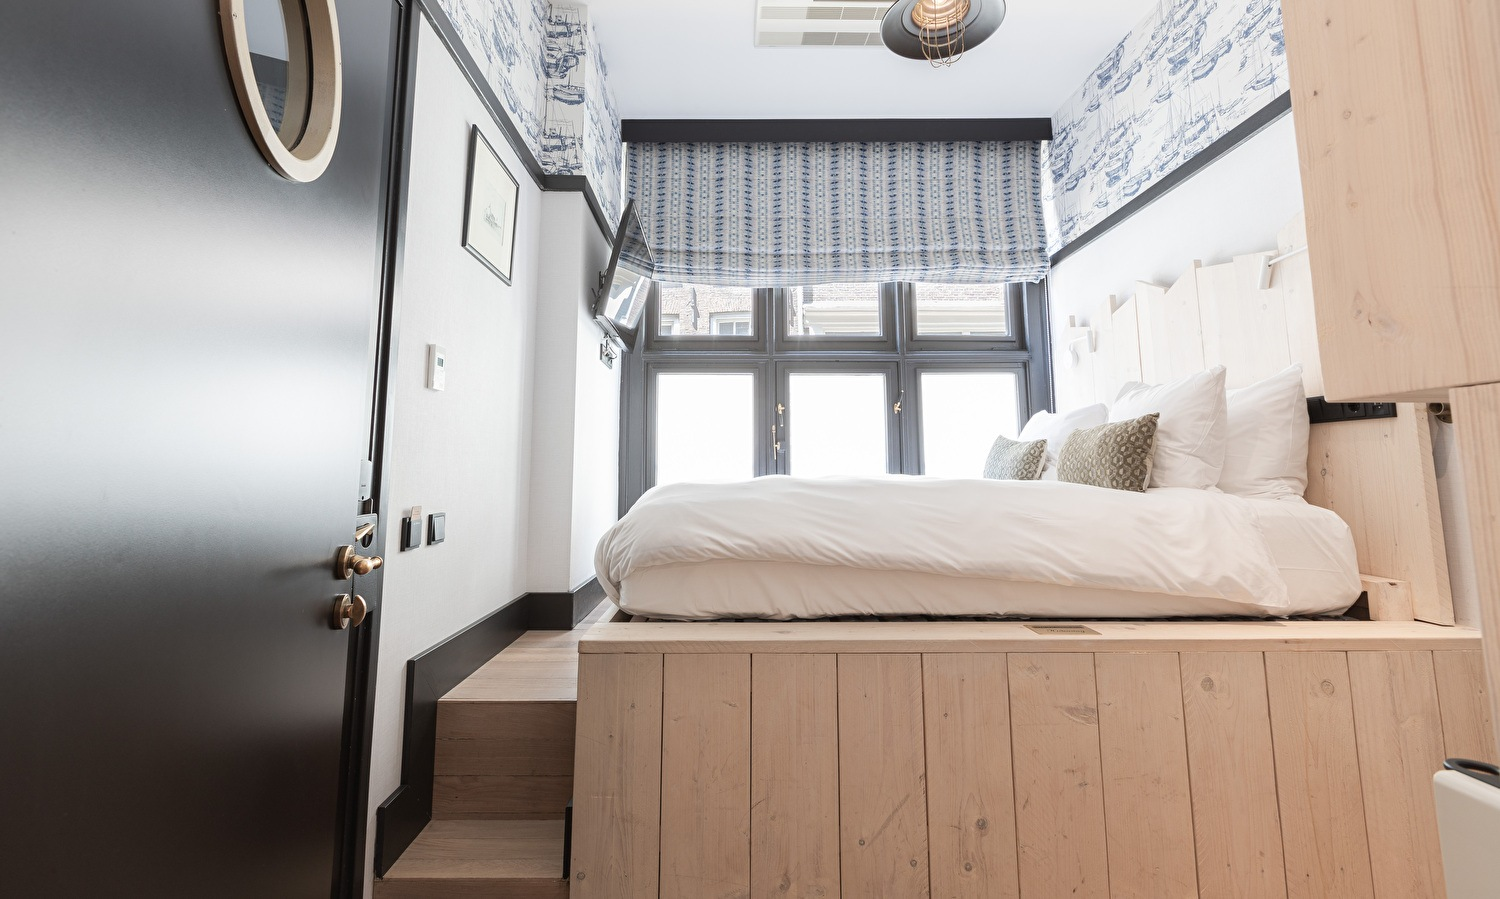 With our unique Hendrick's Hideaway, the bed is on an elevated platform